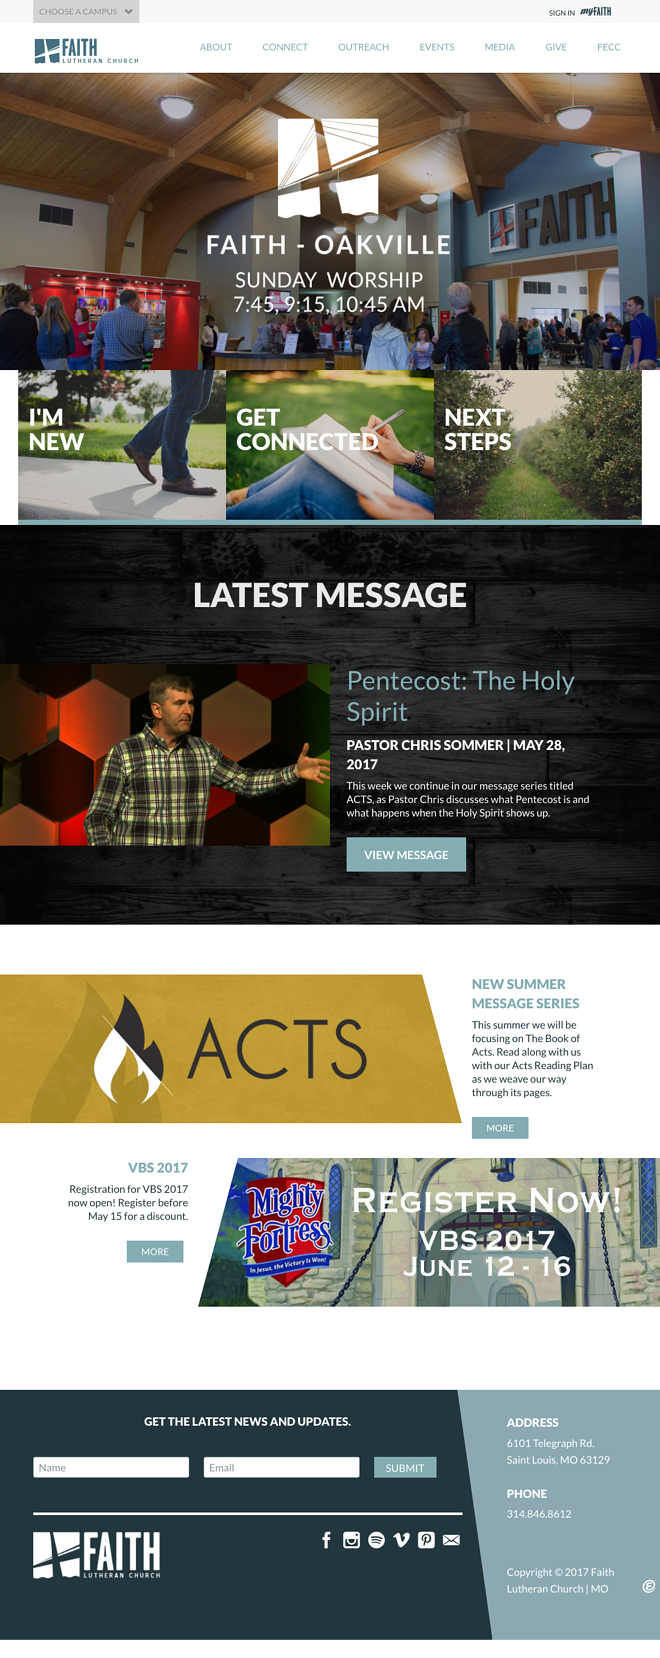 6-awesome-multi-site-church-websites-for-inspiration-faithlutheran.png